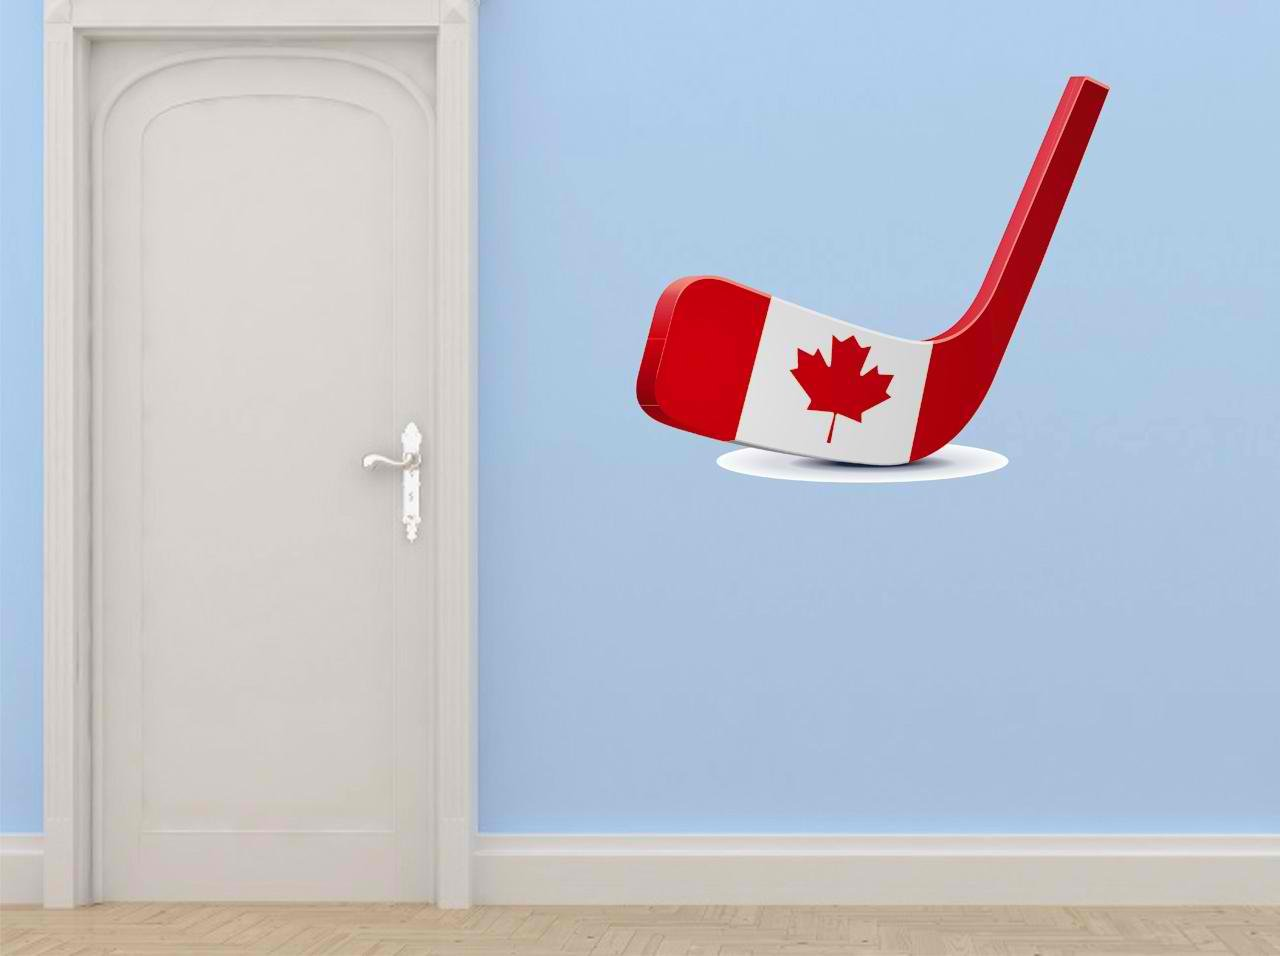 Design with Vinyl Cryst 247 445 As Seen Canada Hockey Stick Team Sport Puck Red White Vinyl Wall Decal Art Home Decor, 30 by 30-Inch, As Seen